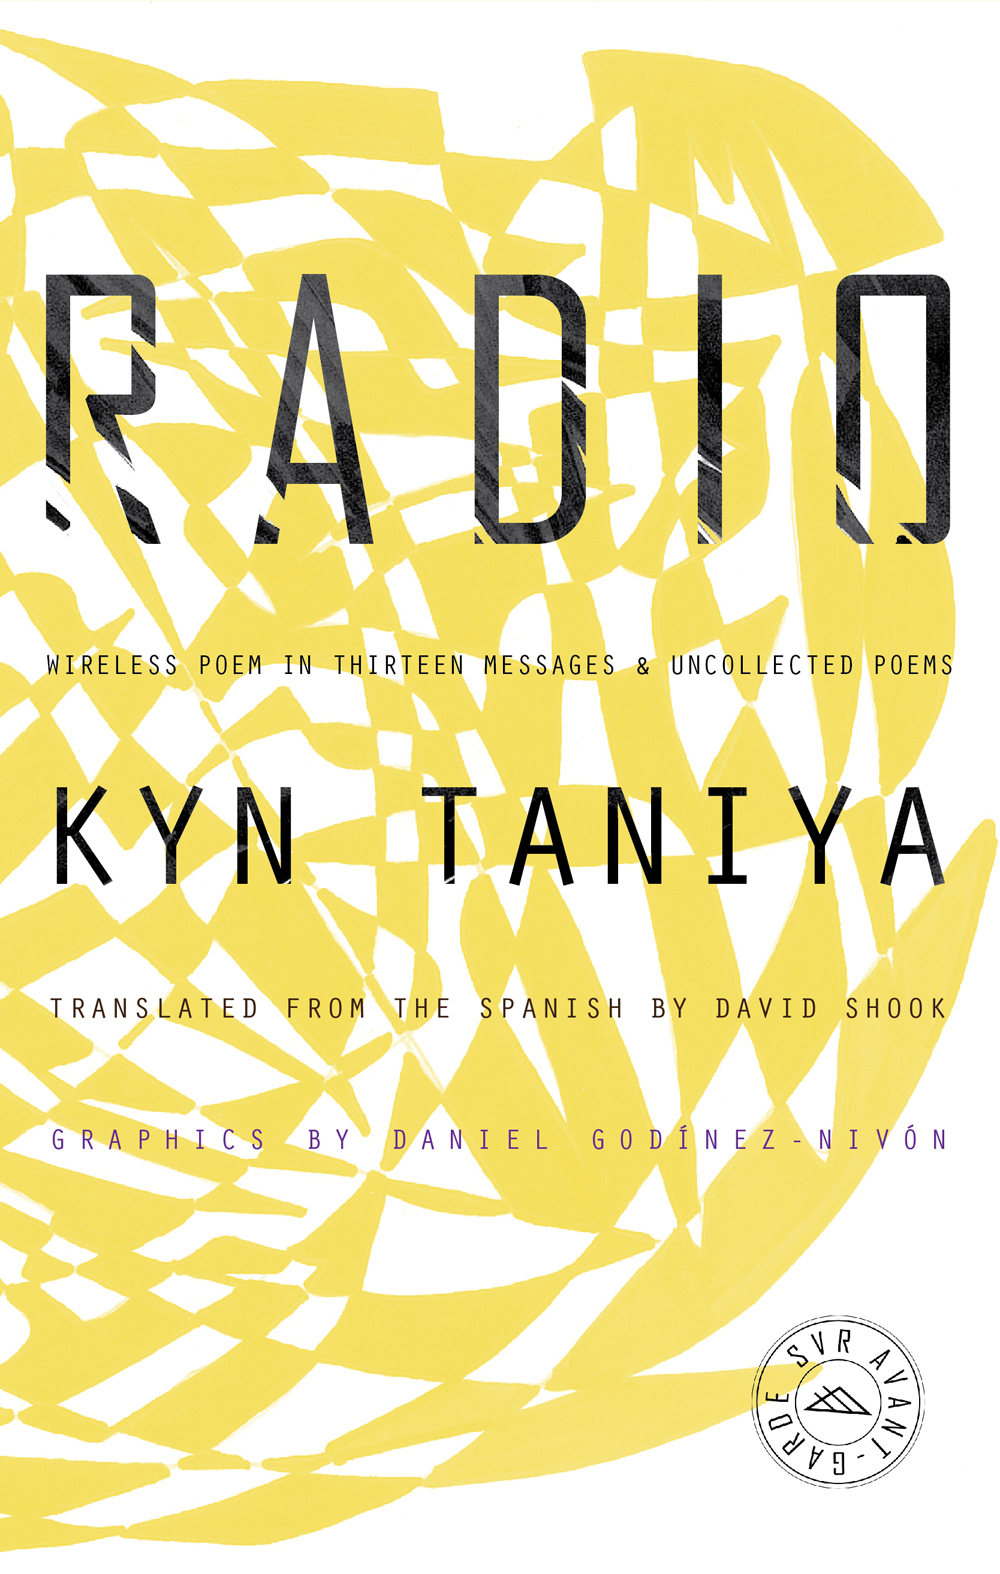 Radio: Wireless Poem in Thirteen Messages & Uncollected Poems